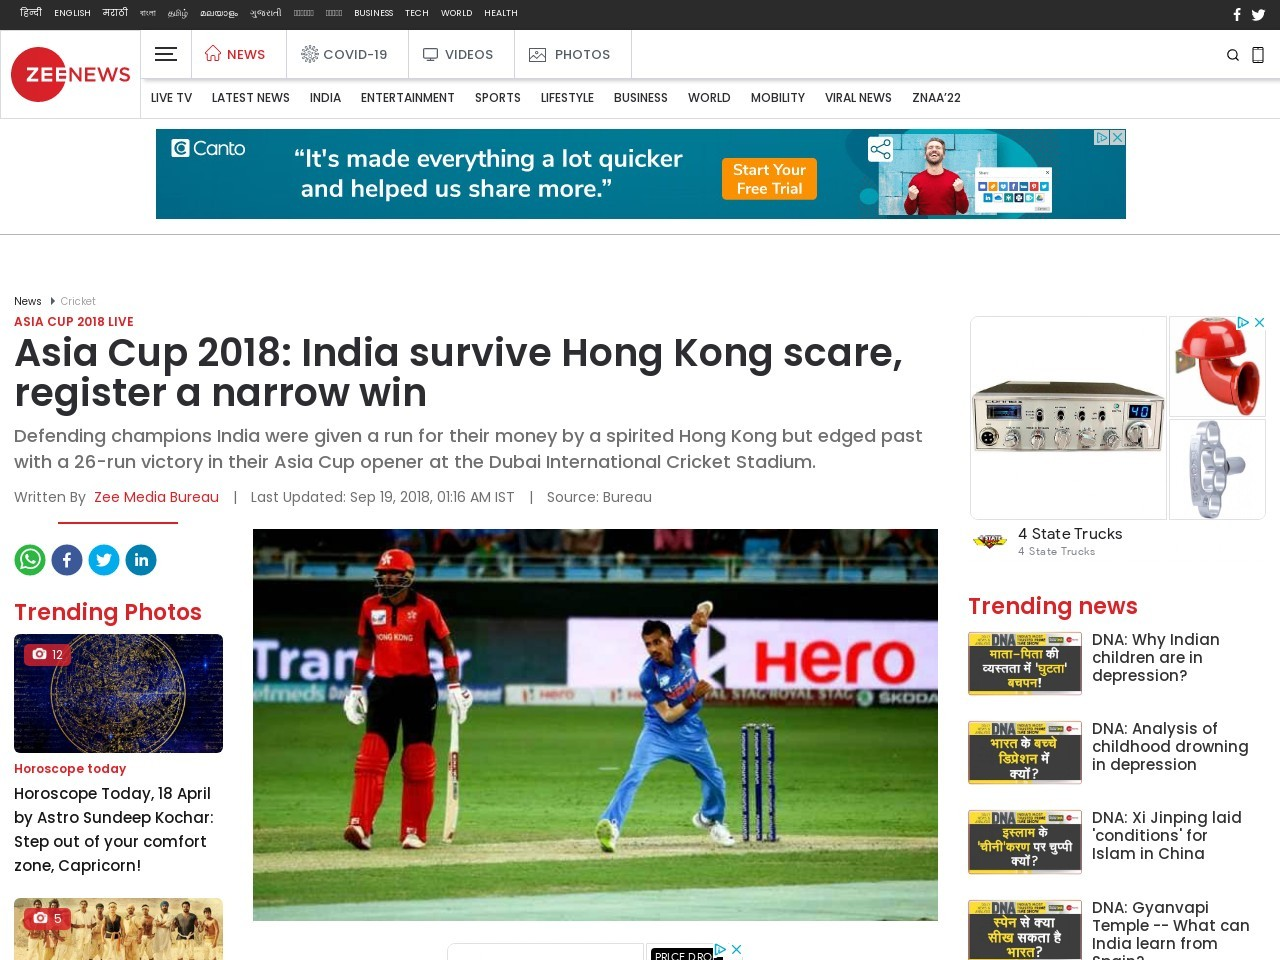 Asia Cup 2018: India survive Hong Kong scare, register a narrow win